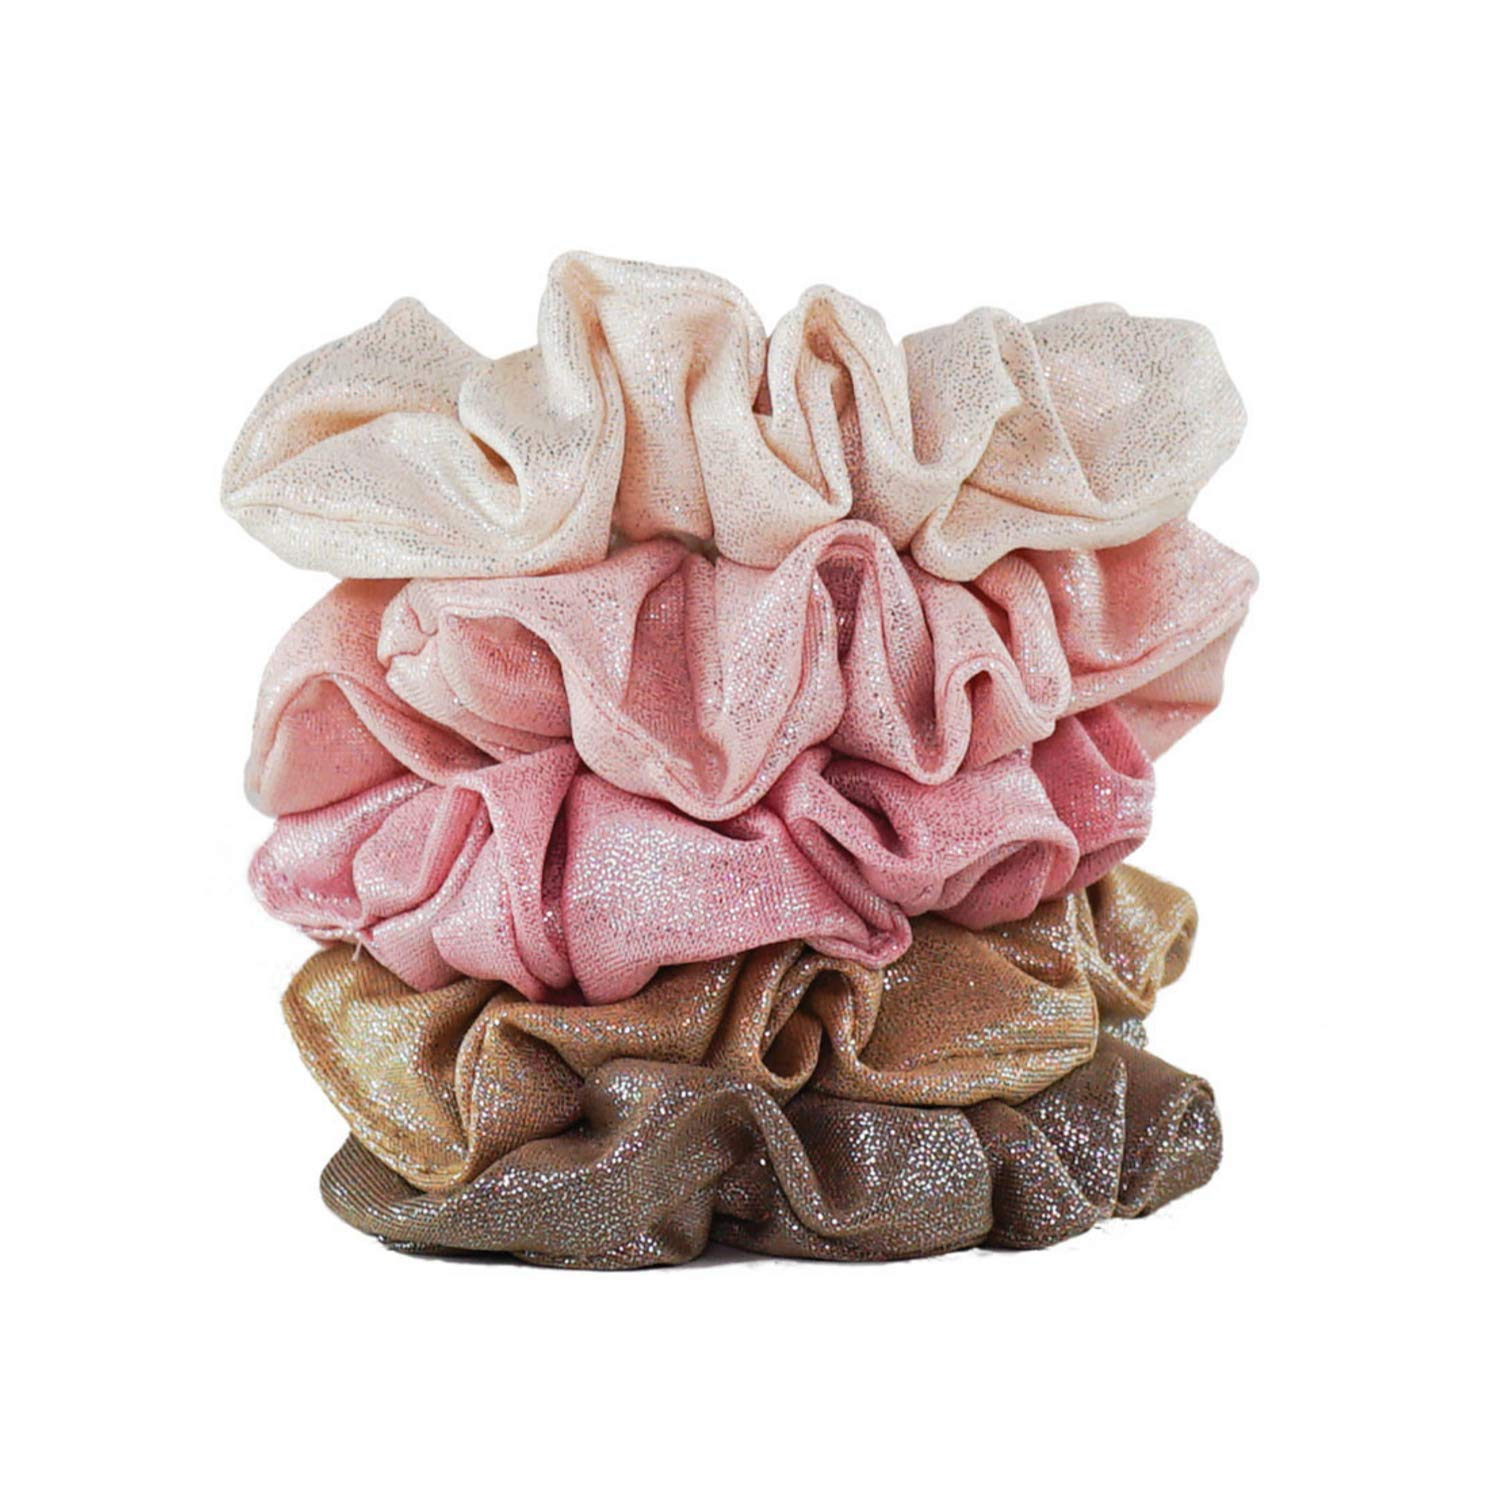 Kitsch - Kitsch Women's Metallic Scrunchies